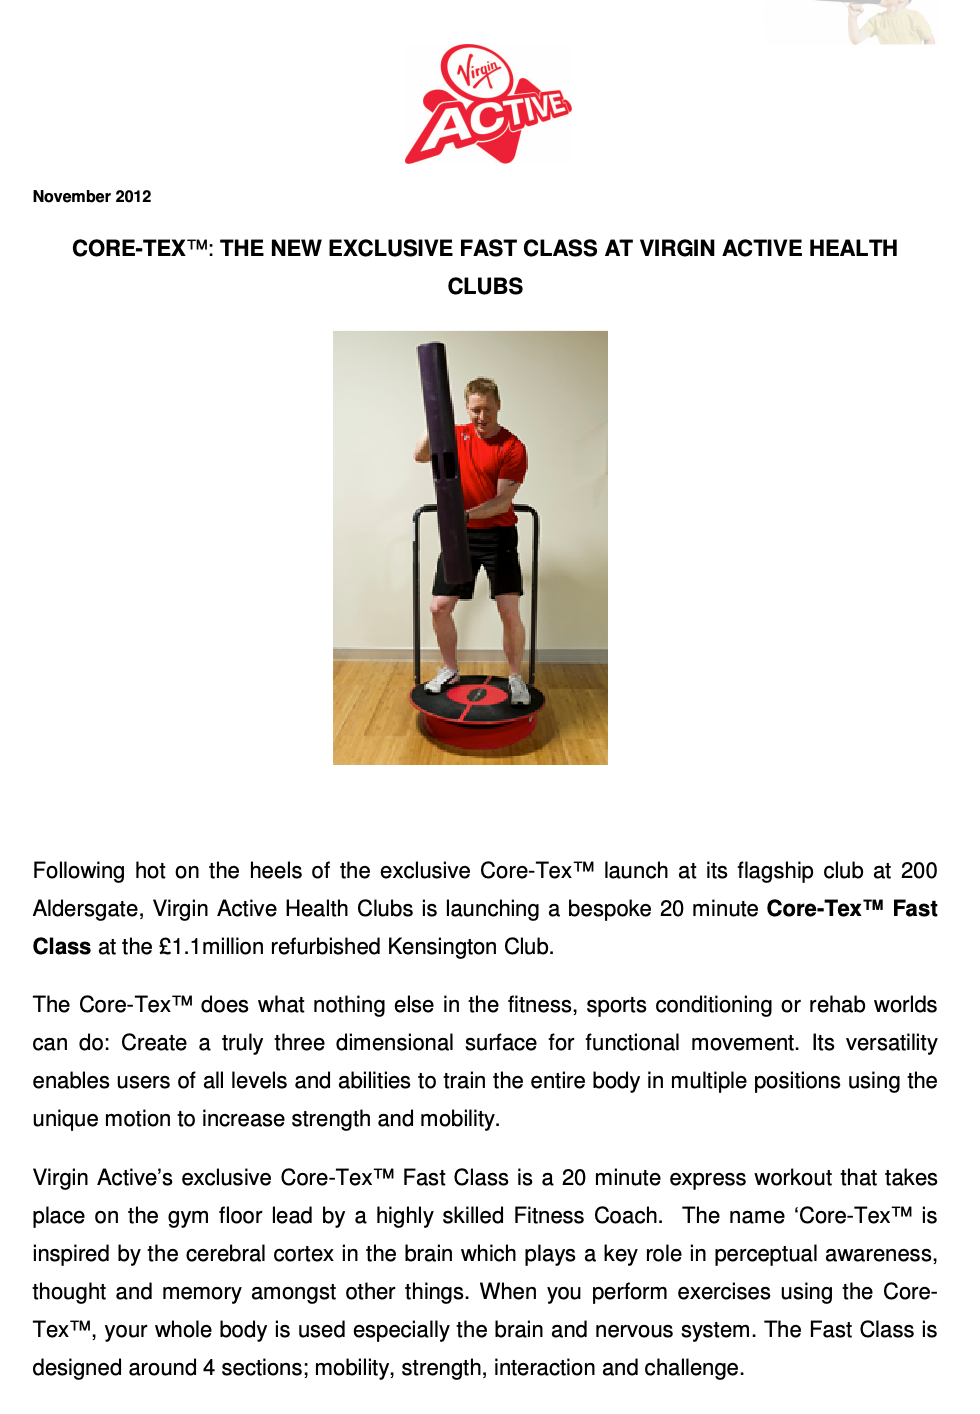 VIRGIN ACTIVE HEALTH CLUBS PRESS RELEASE, NOVEMEBER 2012: CORE-TEX : The New Exclusive Fast Class at Virgin Active Health Clubs